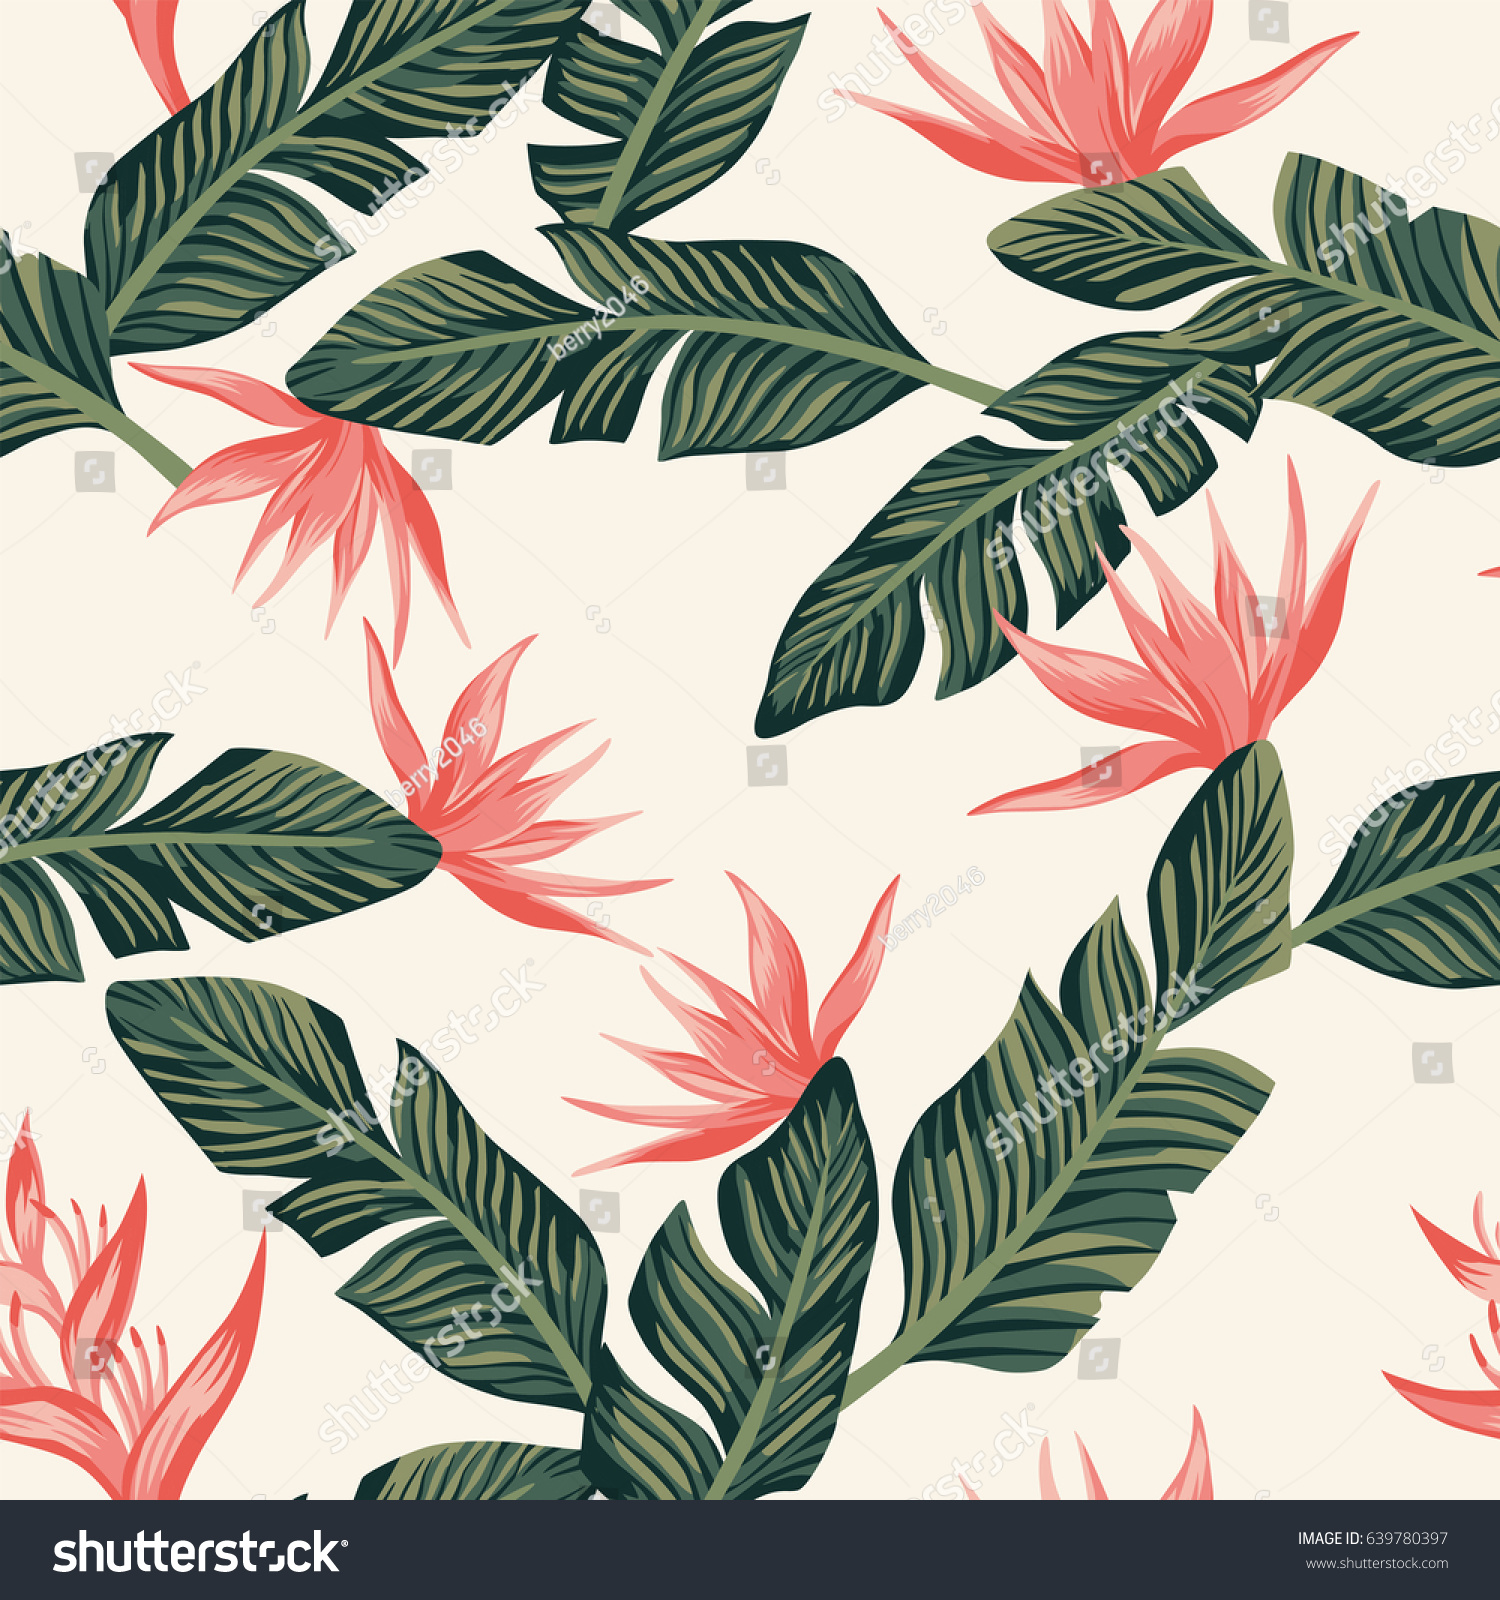 Spring Green Leaves And Flowers Background With Plants: Beach Cheerful Seamless Pattern Wallpaper Tropical Stock